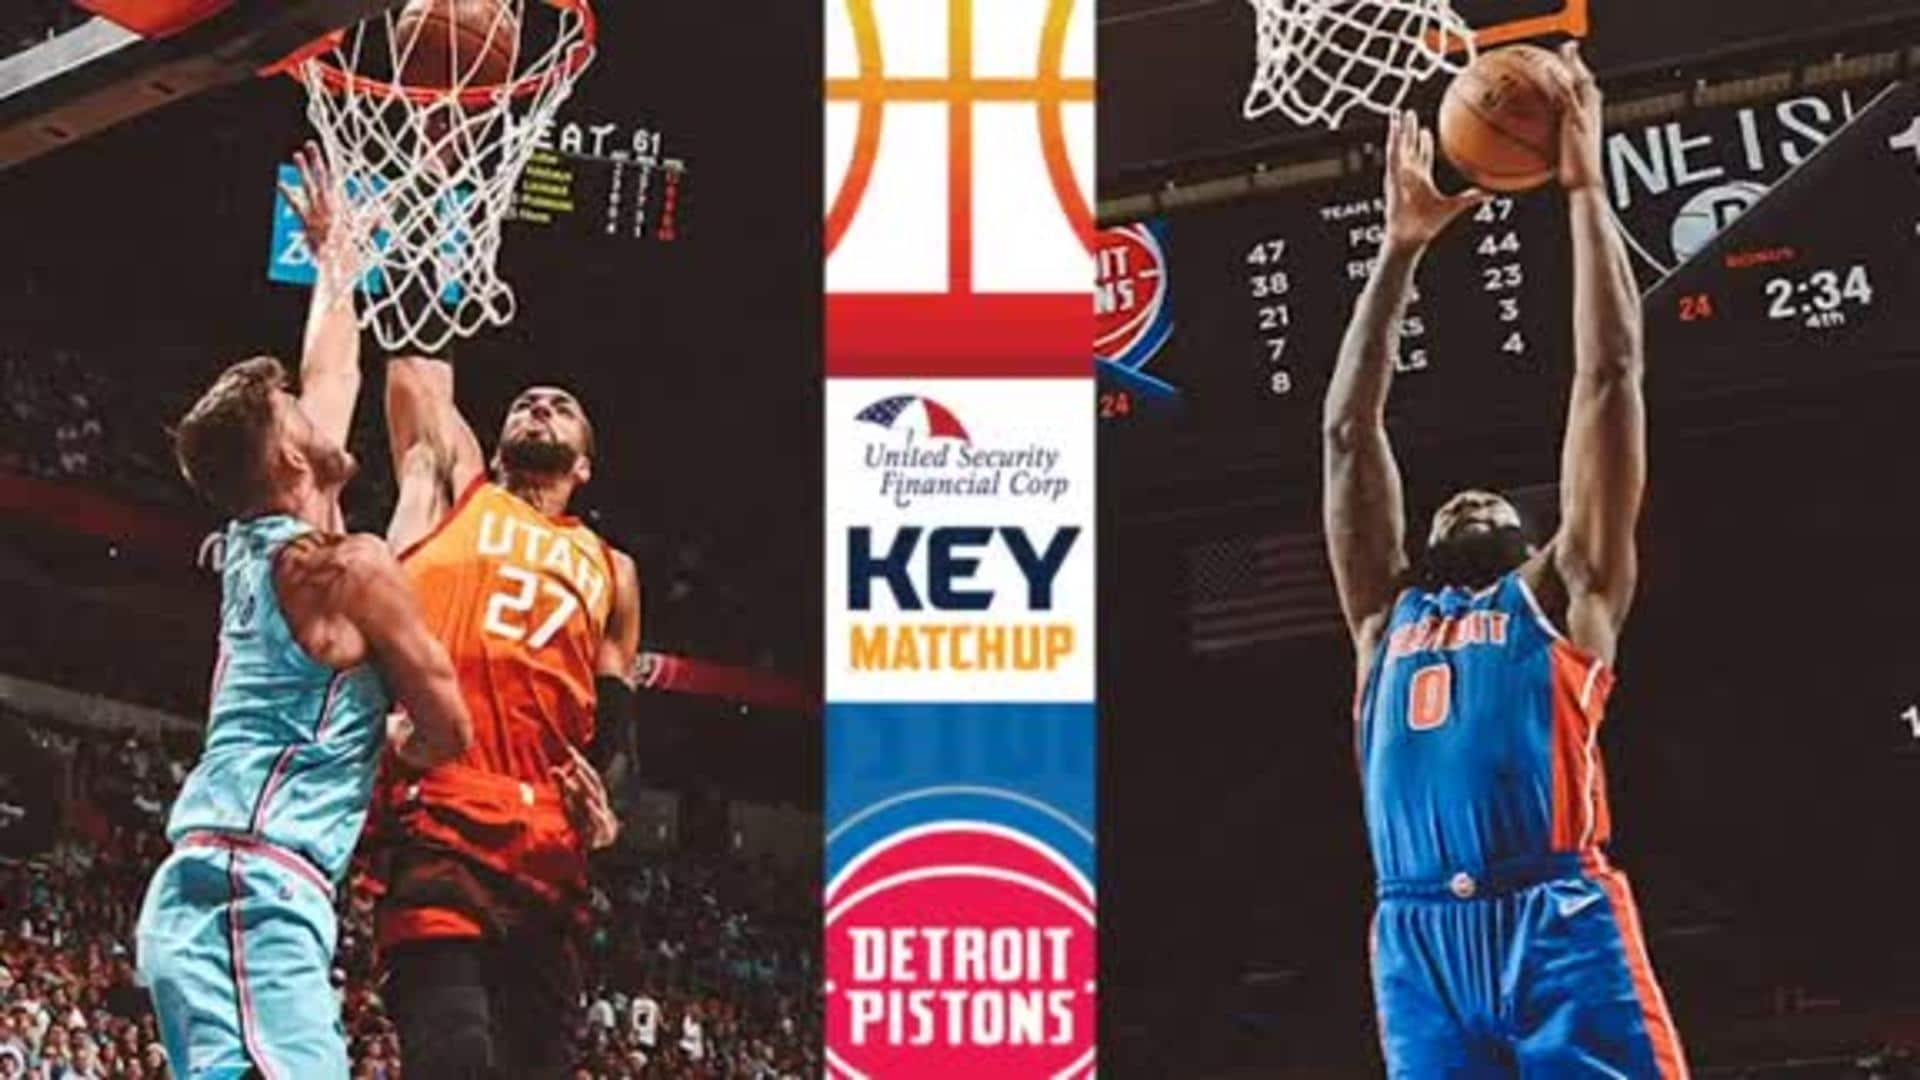 Key Matchup: Rudy Gobert vs. Andre Drummond